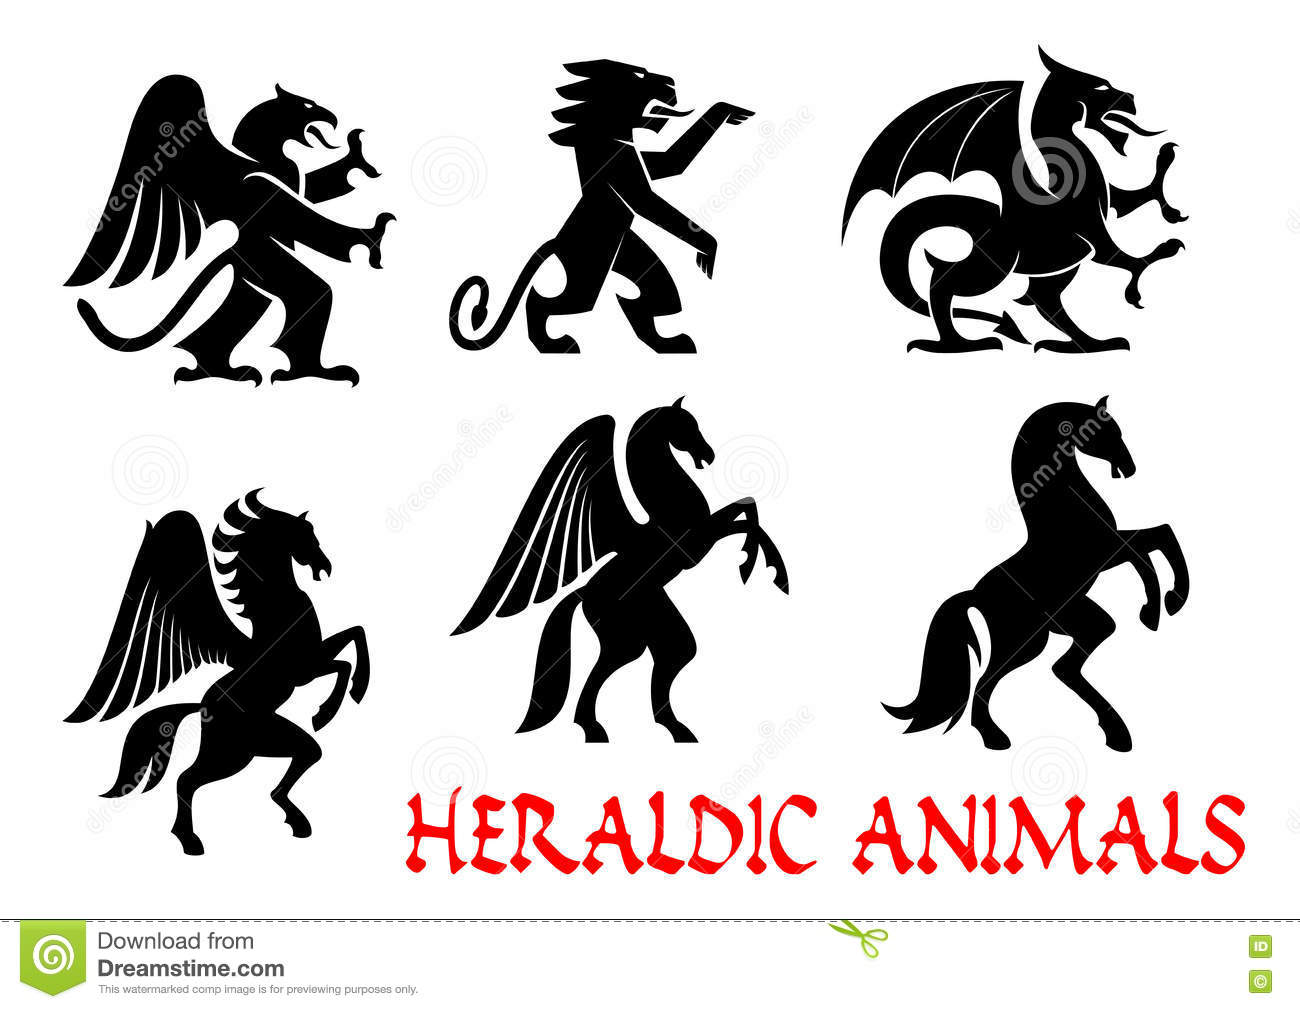 Animals Heraldic Emblems Vector Silhouette Icons Stock Vector Illustration Of Horse Gothic 76842855